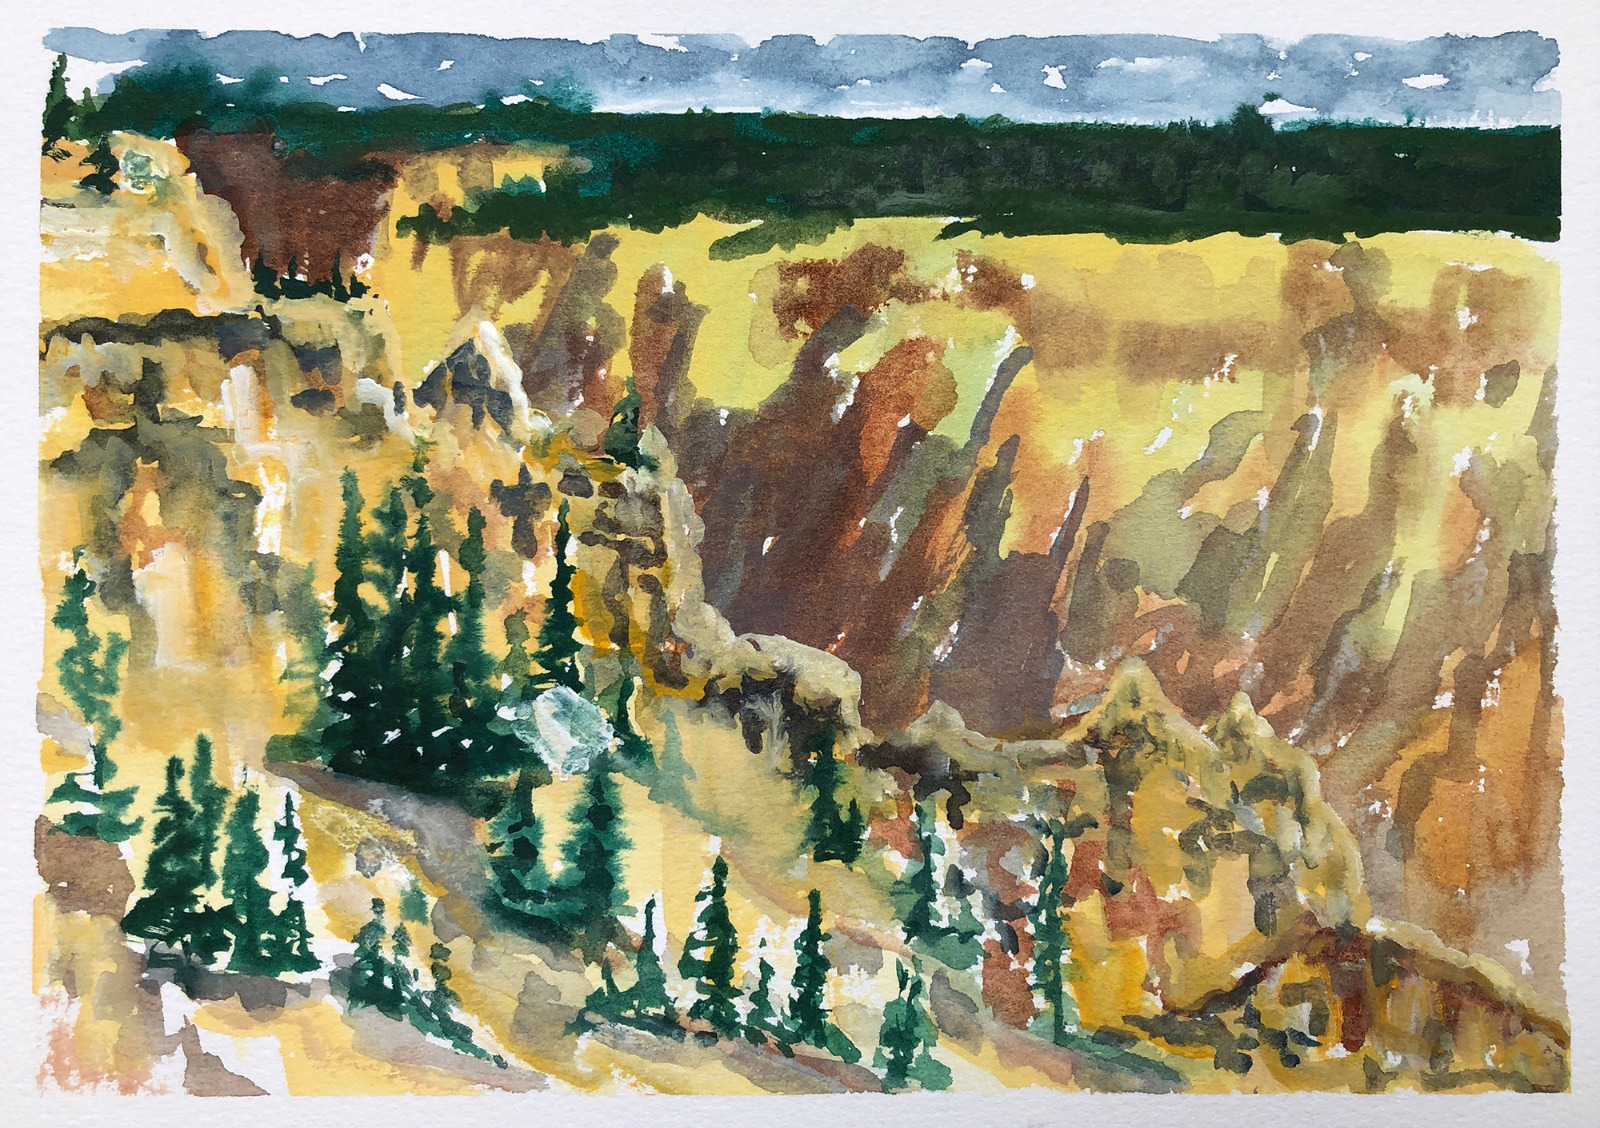 The Grand Canyon of the Yellowstone by Sue Cedarholm